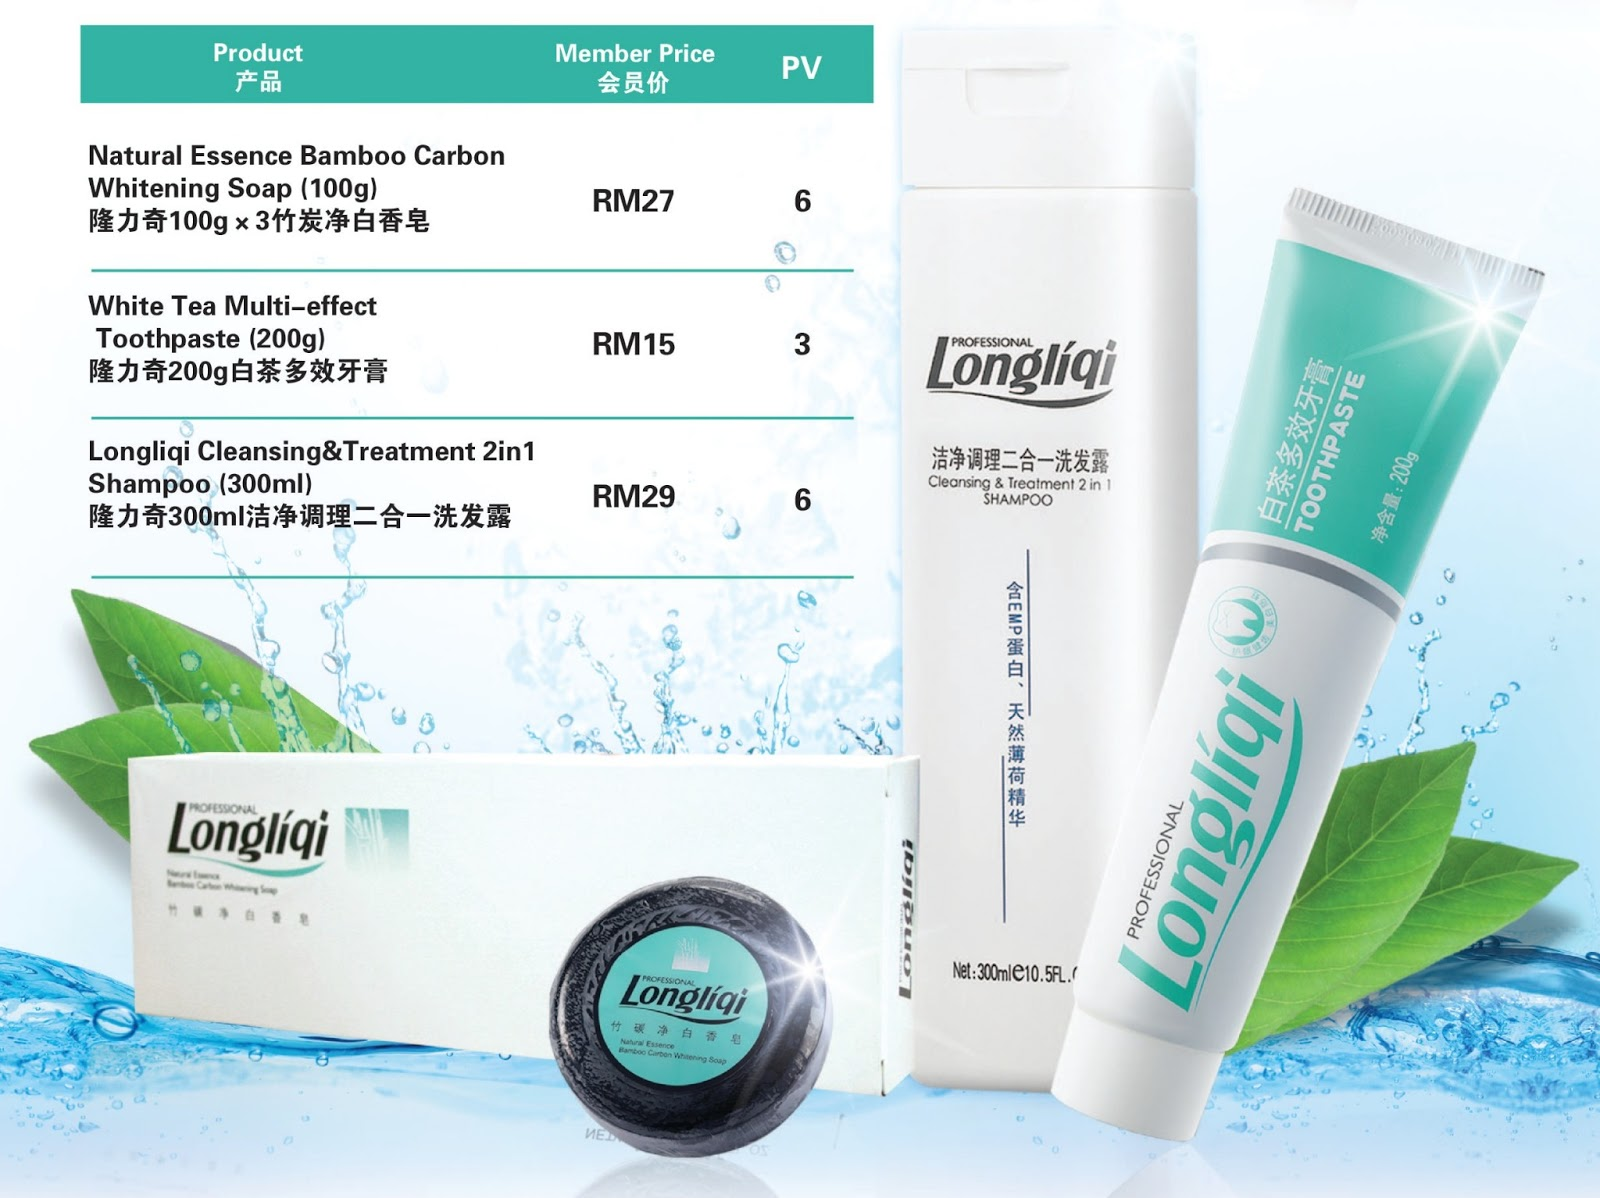 Anniemarketing Weebly Com Longrich Personal Care